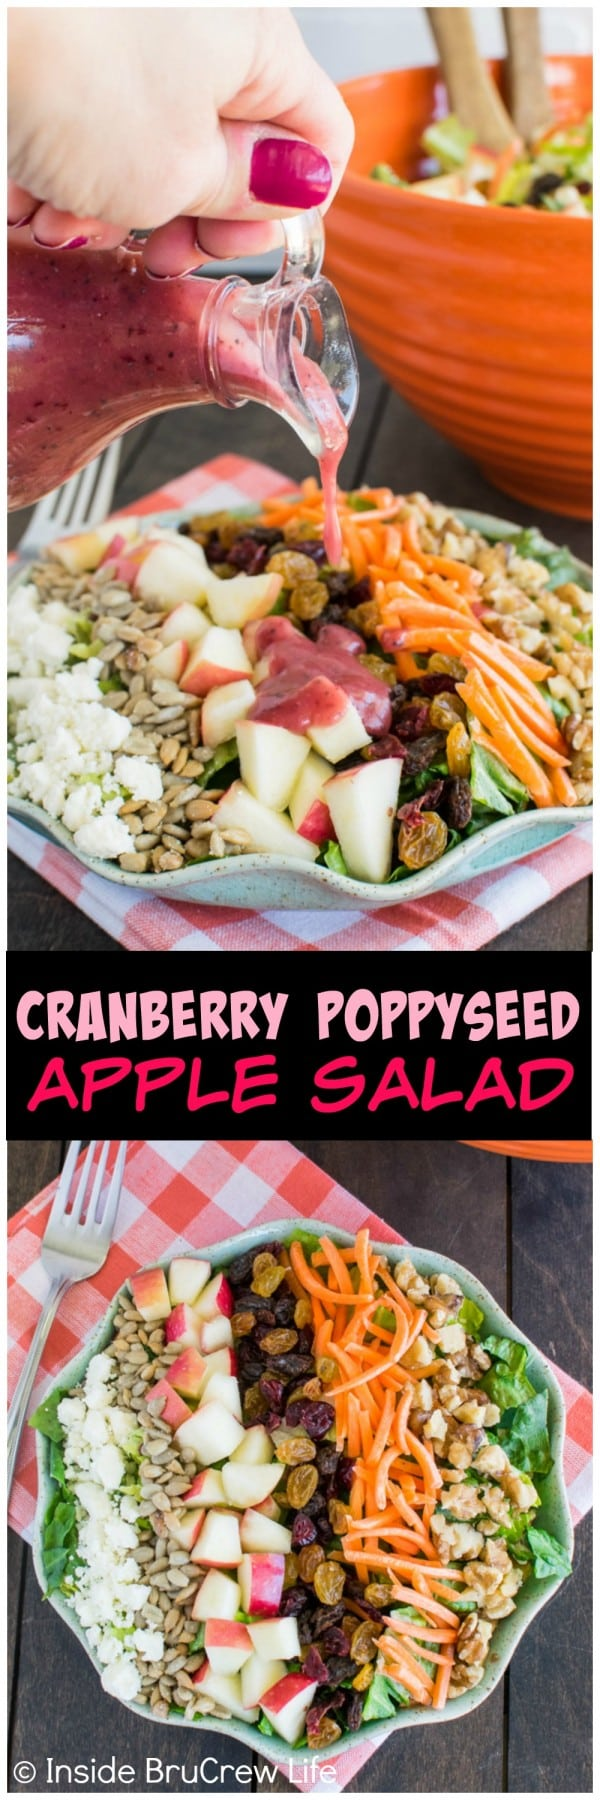 Cranberry Poppyseed Apple Salad - fruit and nuts add a fun crunch to this delicious salad recipe. It's a delicious recipe for picnics or dinner parties.